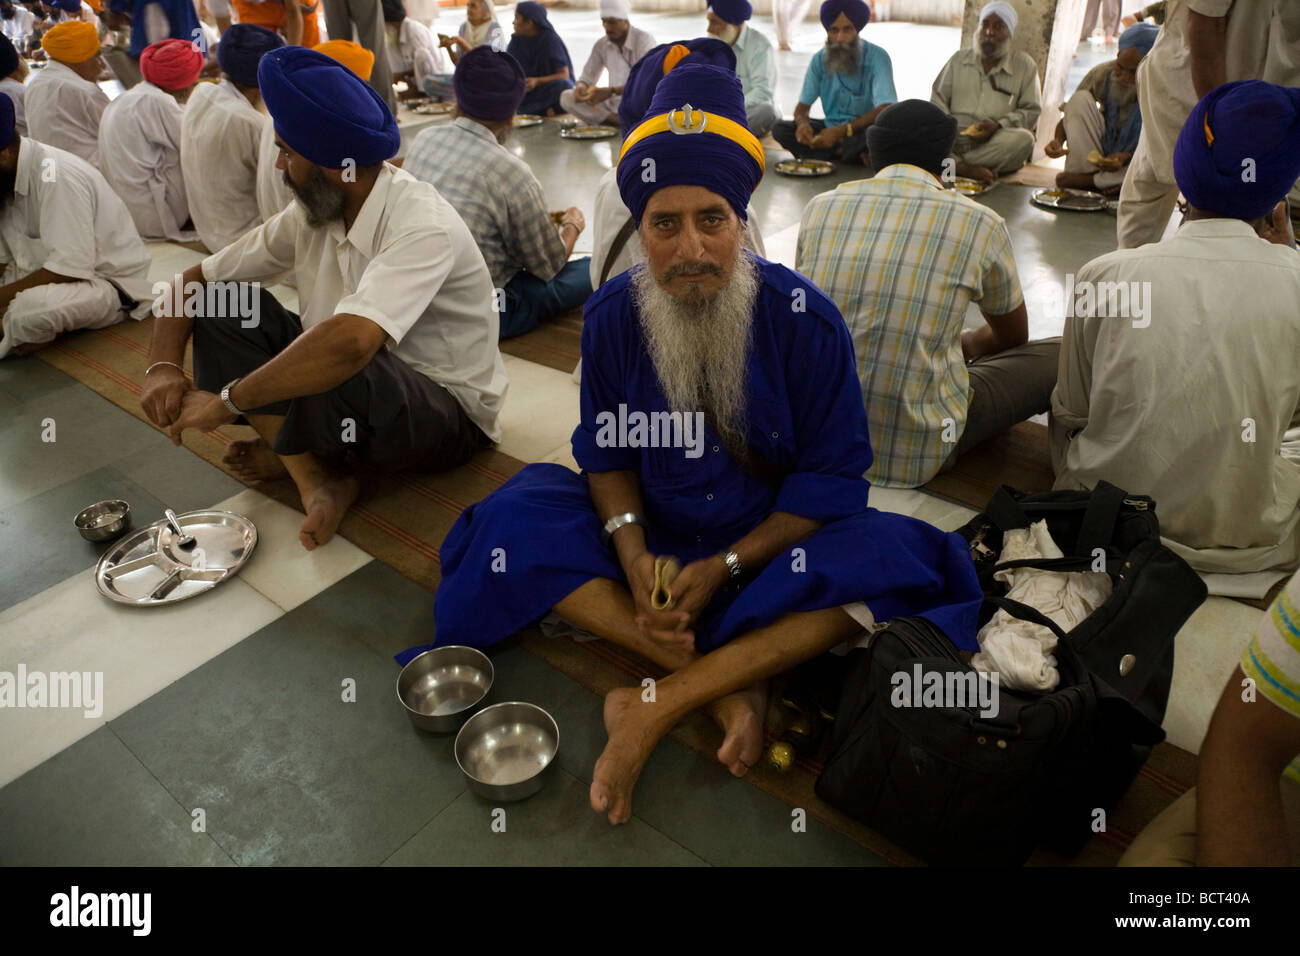 Sikh man waits to eat a free meal at the Community kitchen in the Golden Temple (Sri Harmandir Sahib) Amritsar. Stock Photo